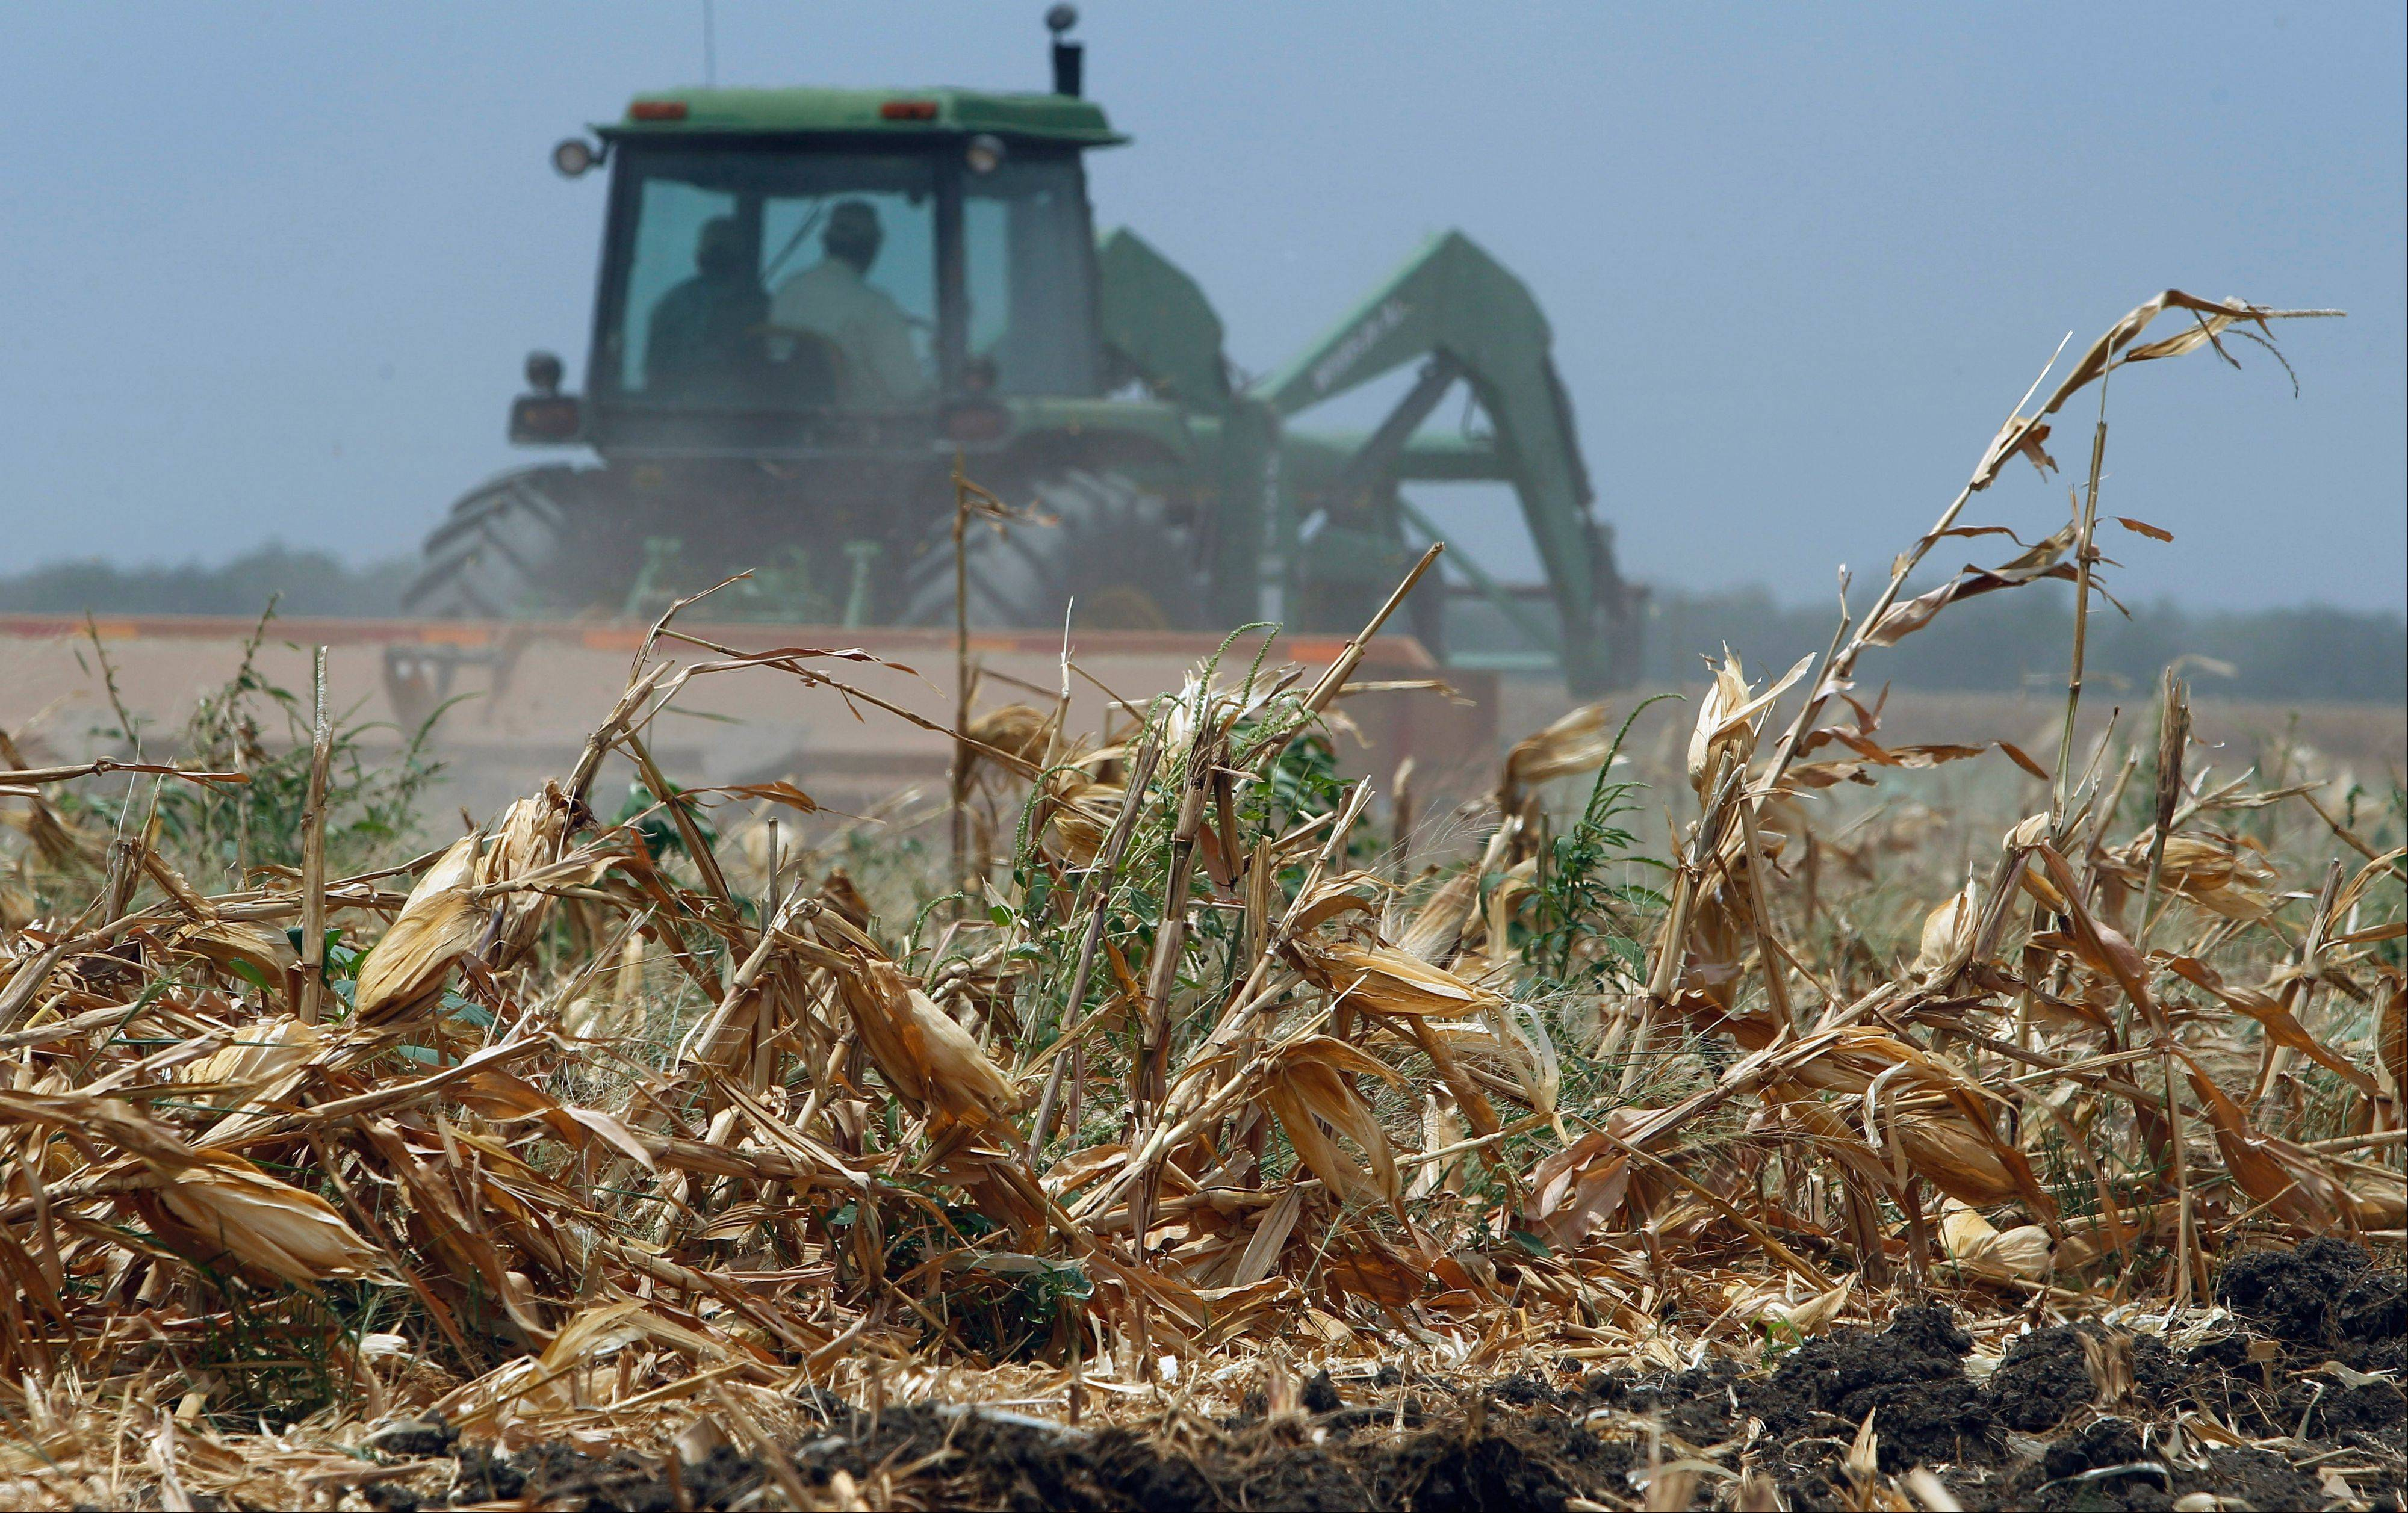 Associated Press/July 22 A tractor plows over a recently harvested corn field near Hondo, Texas. Agriculture officials say estimated crop and livestock losses from the blistering drought are a record $5.2 billion, and could go higher.